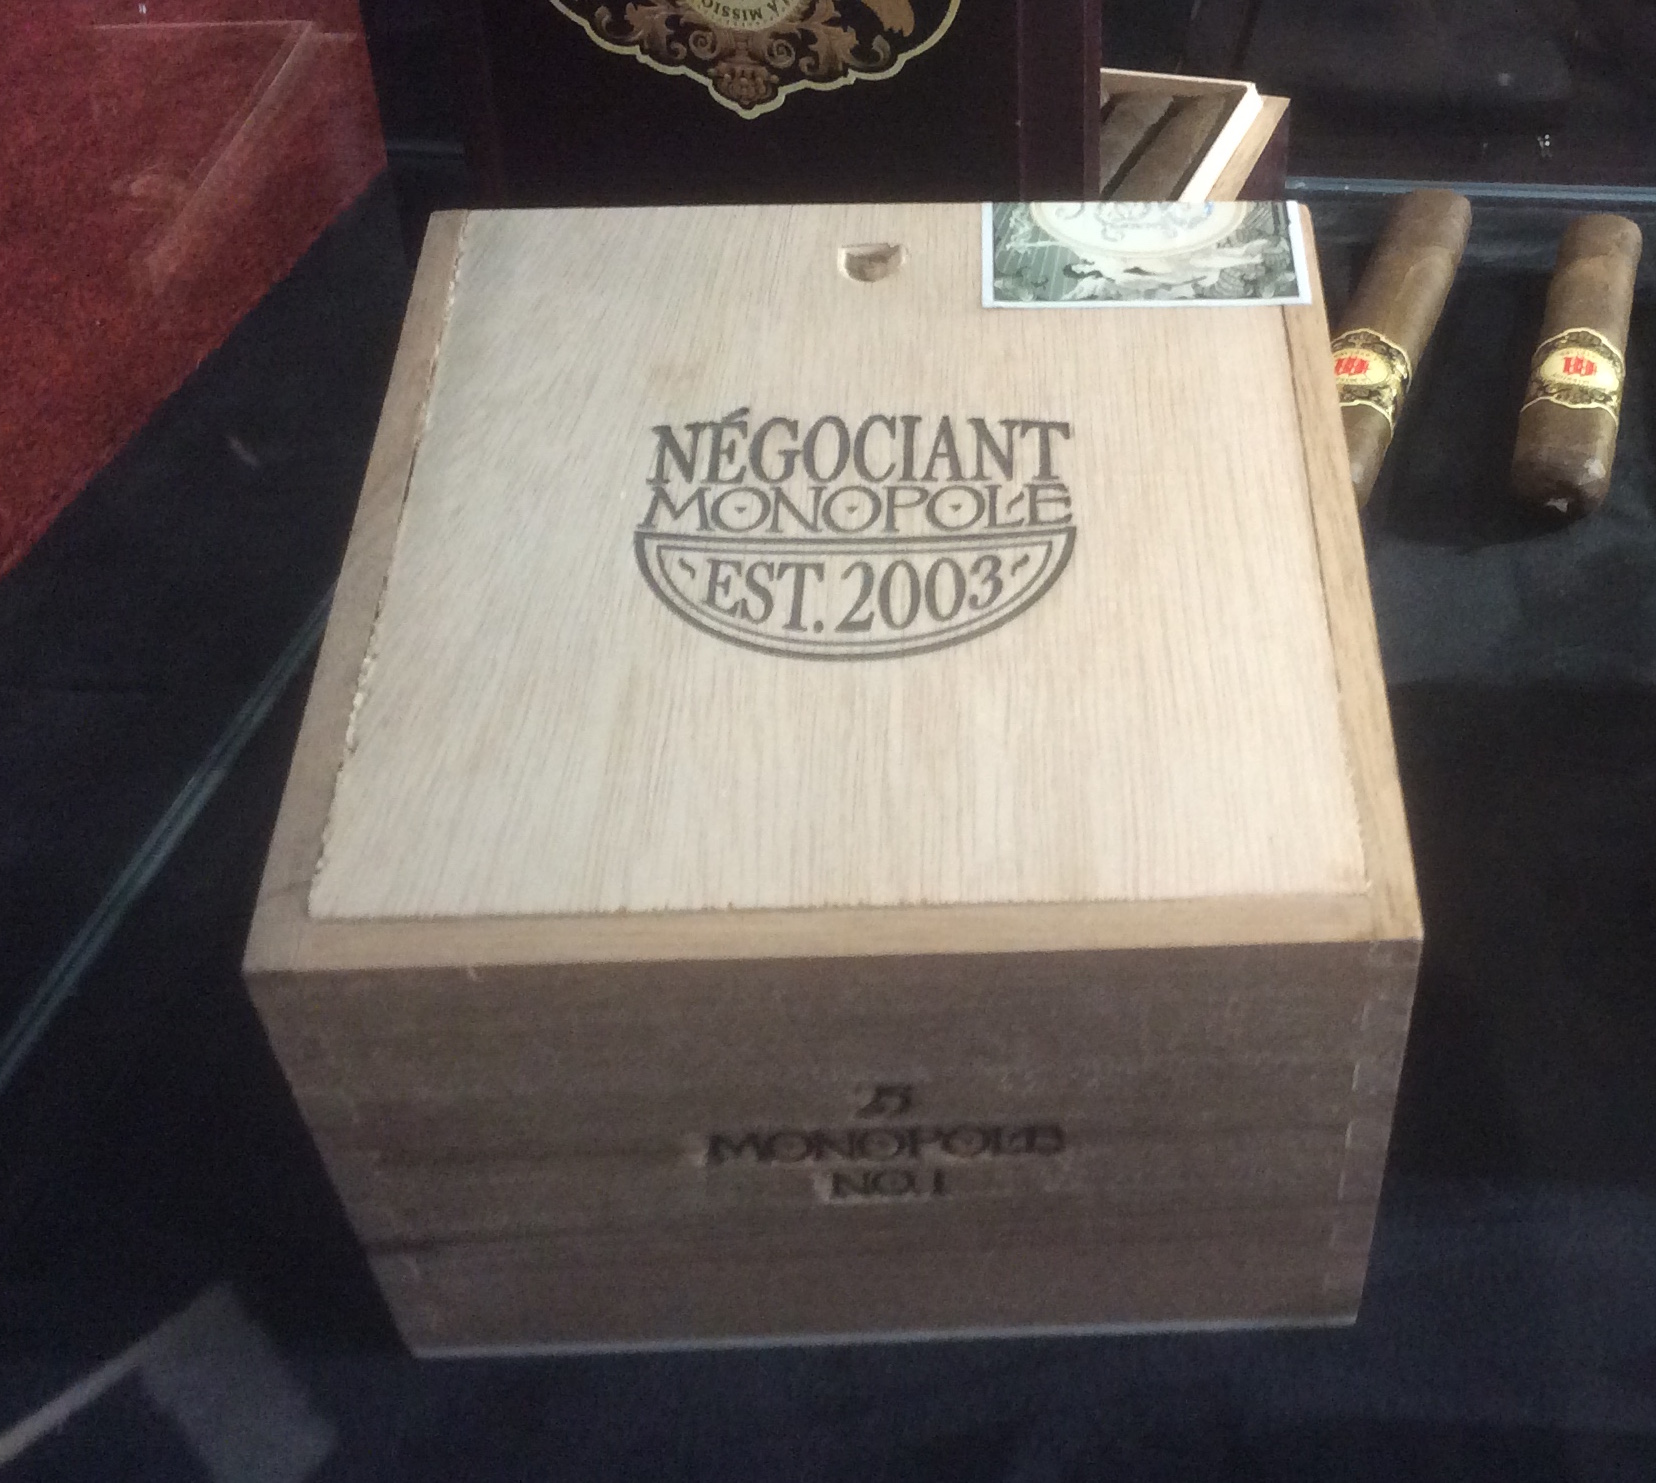 Cigar News: Négociant Monopole Begins Nationwide Distribution